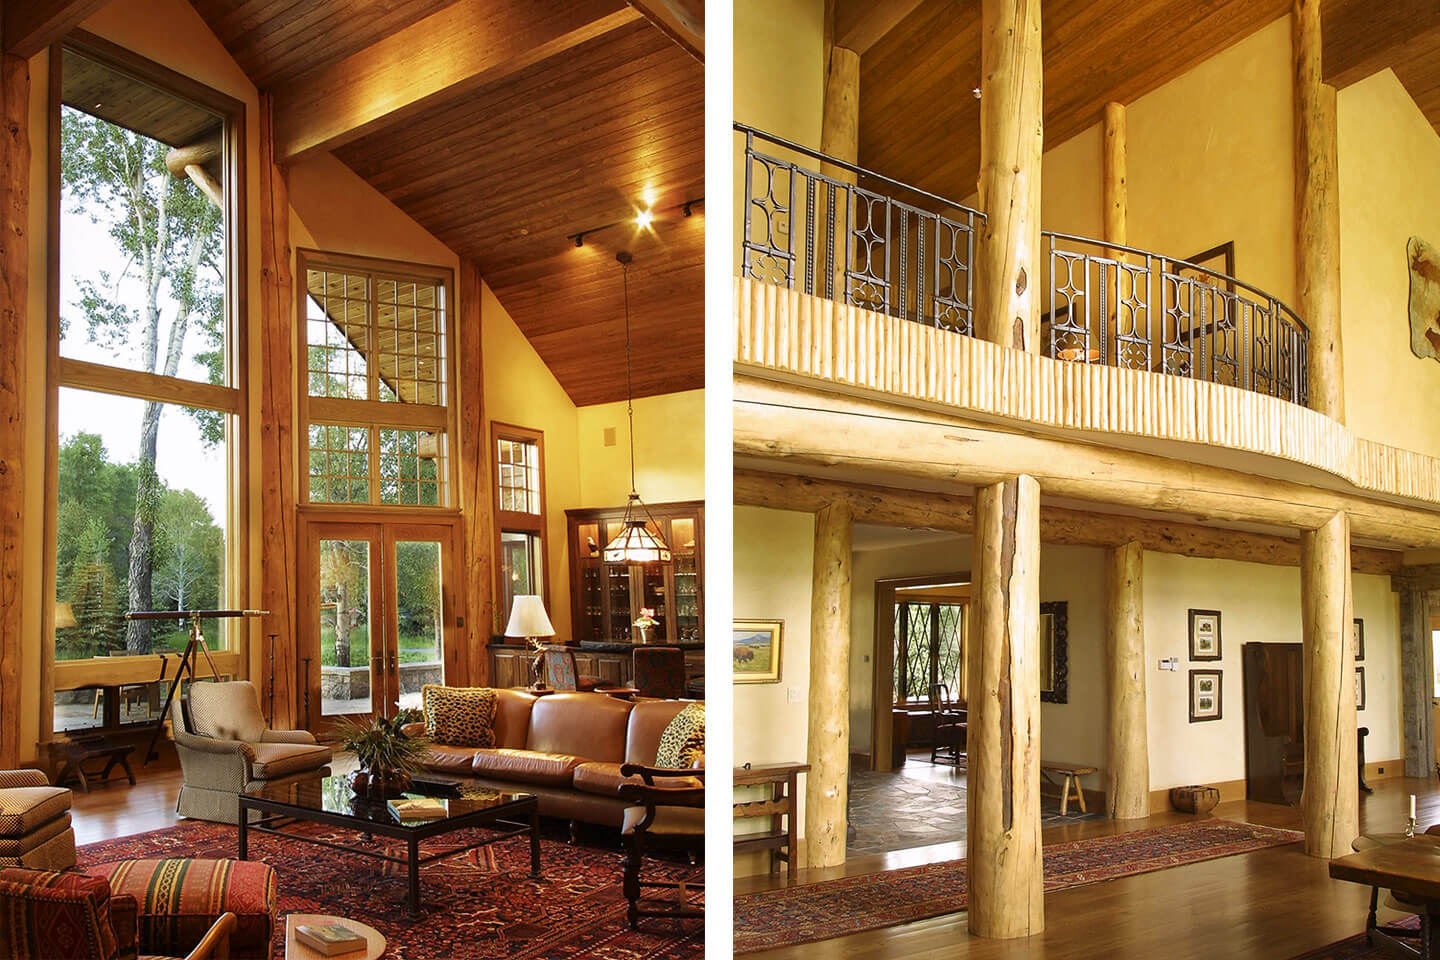 Living room and hallway with peeled lodgepole pine columns